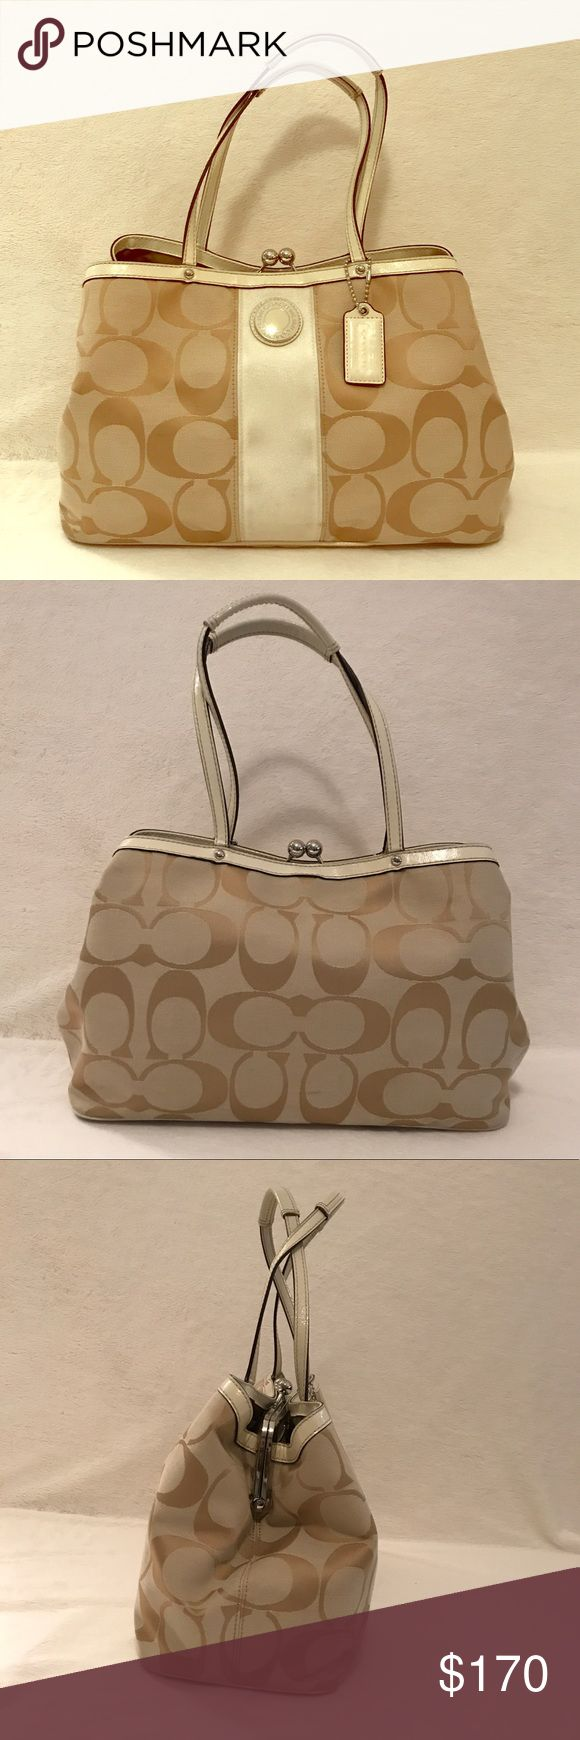 """Cream Coach Bag! Beautiful cream colored signature Coach Bag! White stripe down the middle & white leather handles. 3 separate compartments inside. Slight signs of use, please review pictures carefully. Will post more on request! Offers welcome!! :-) 14.5"""" W x 6"""" D x 9.5"""" T. 8"""" handles. Coach Bags Shoulder Bags"""